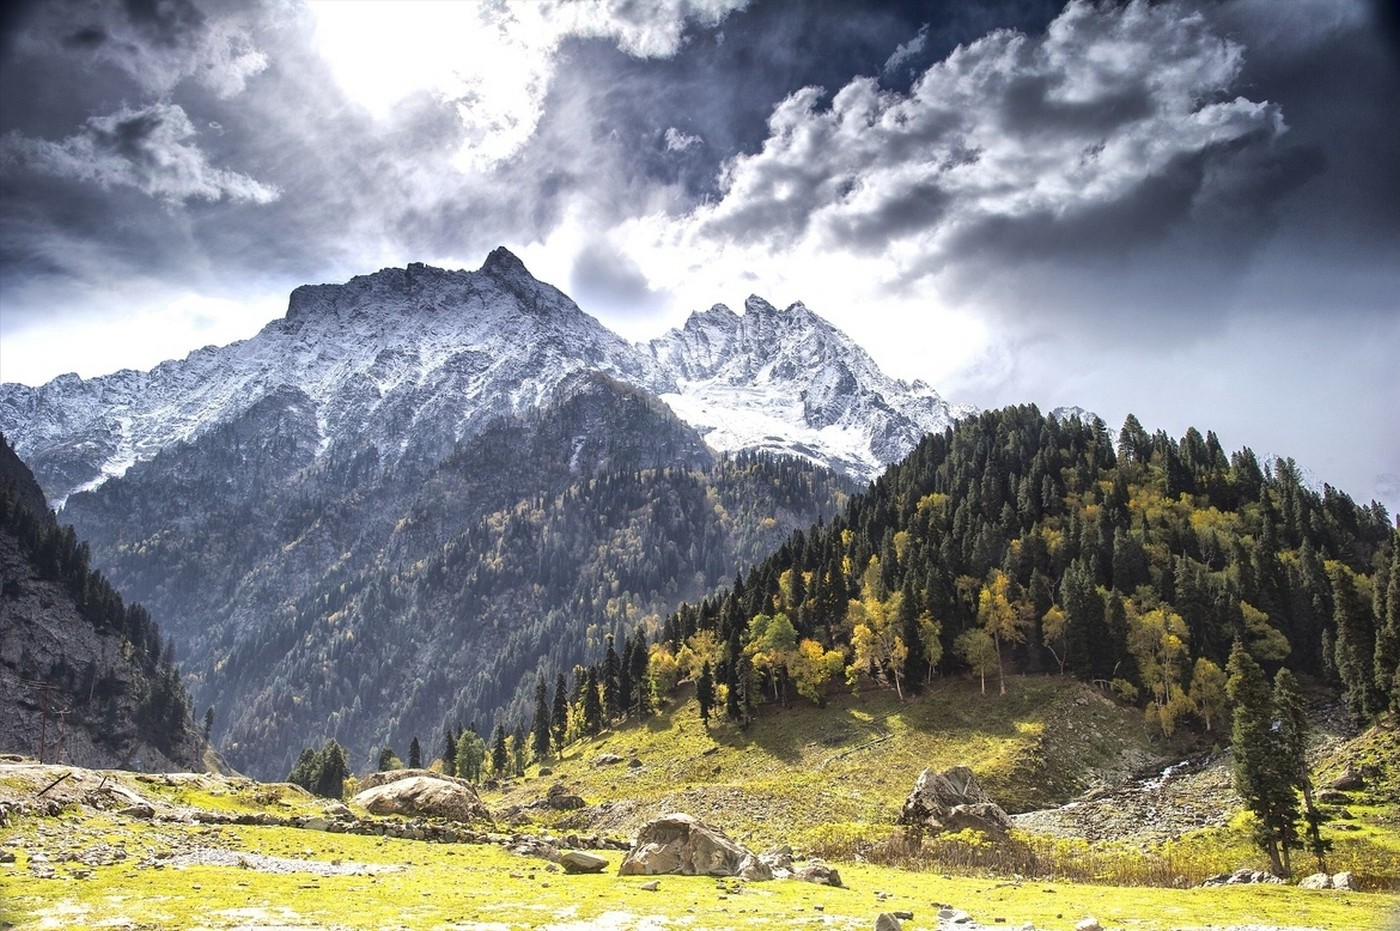 Fall, Mountain, Forest, Clouds, Snowy Peak, Trees, - Mountain Forest In Kashmir , HD Wallpaper & Backgrounds